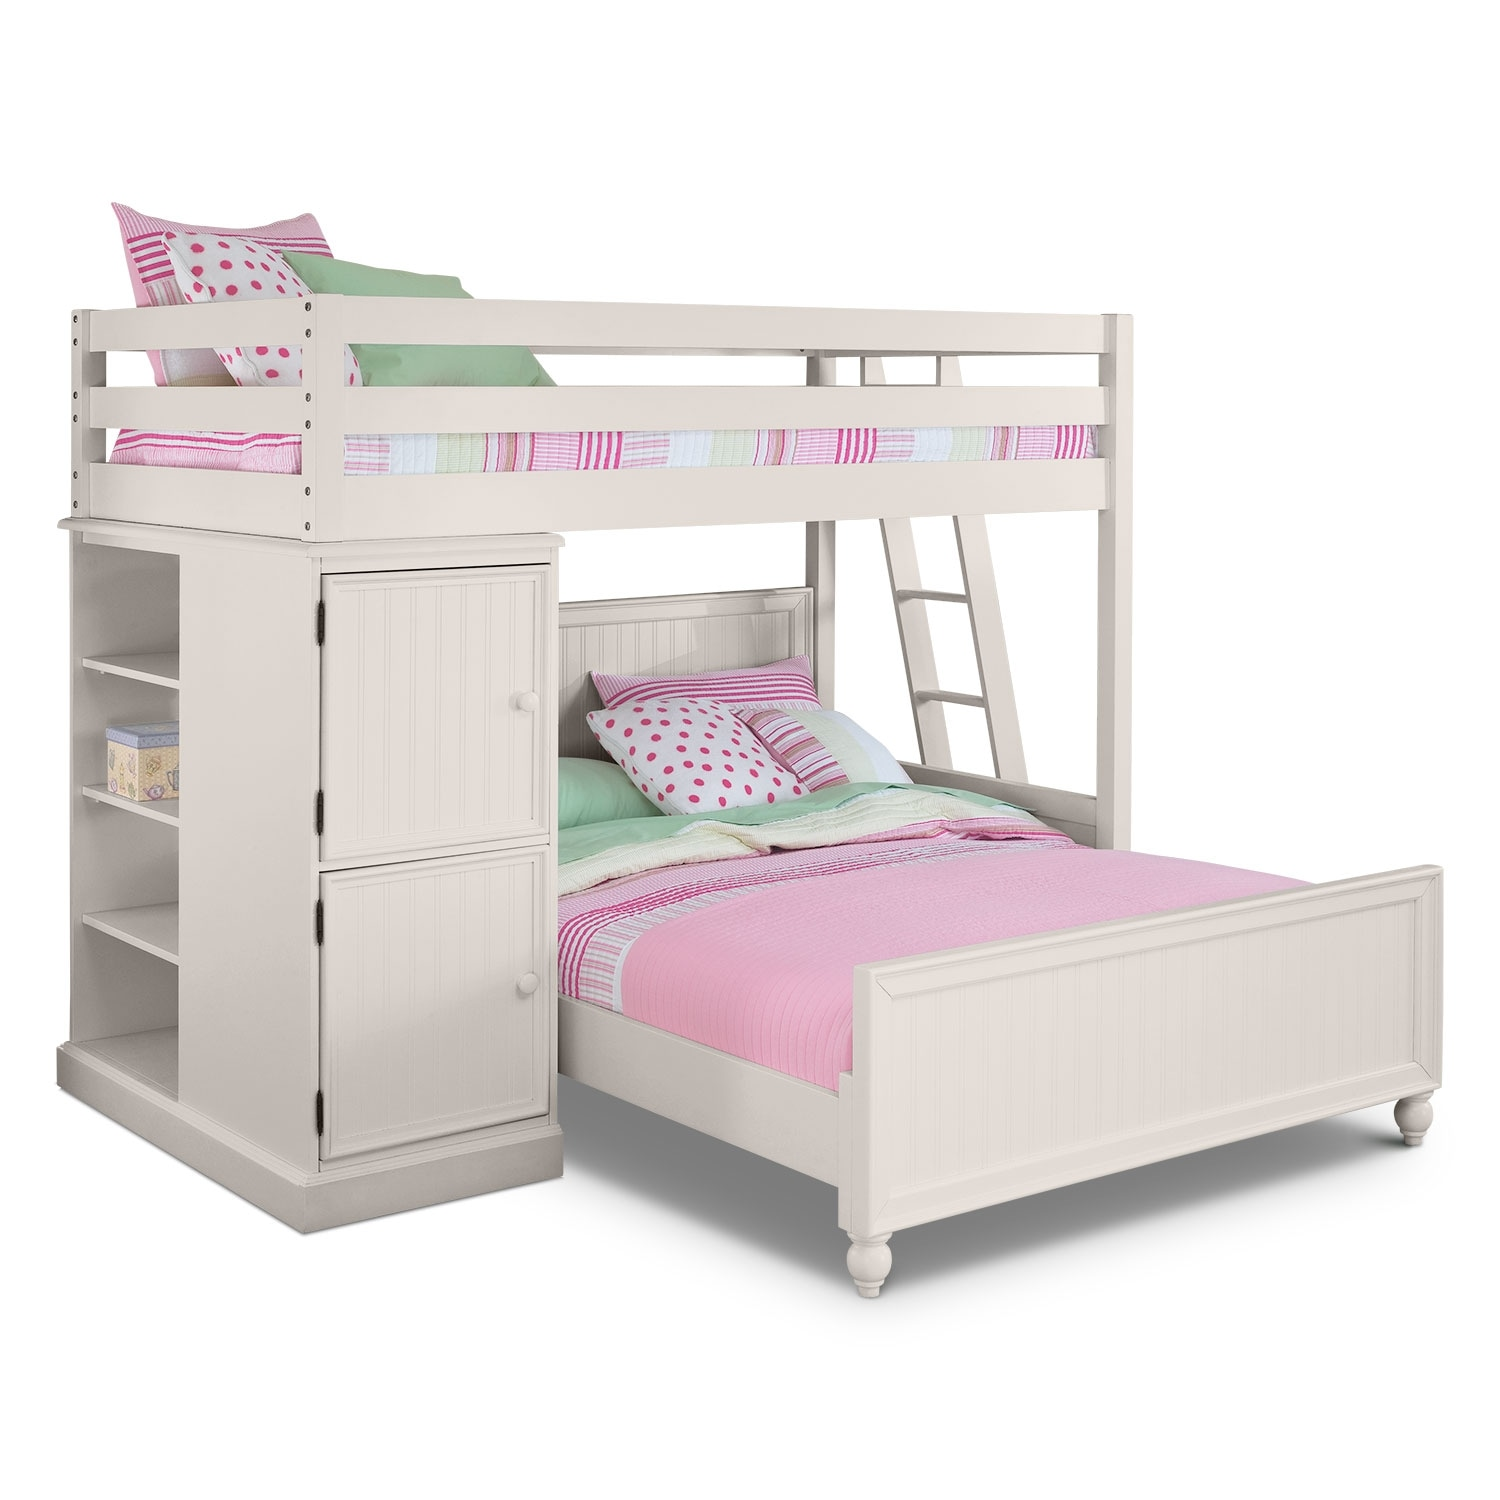 colorworks loft bed with full bed - white | value city furniture